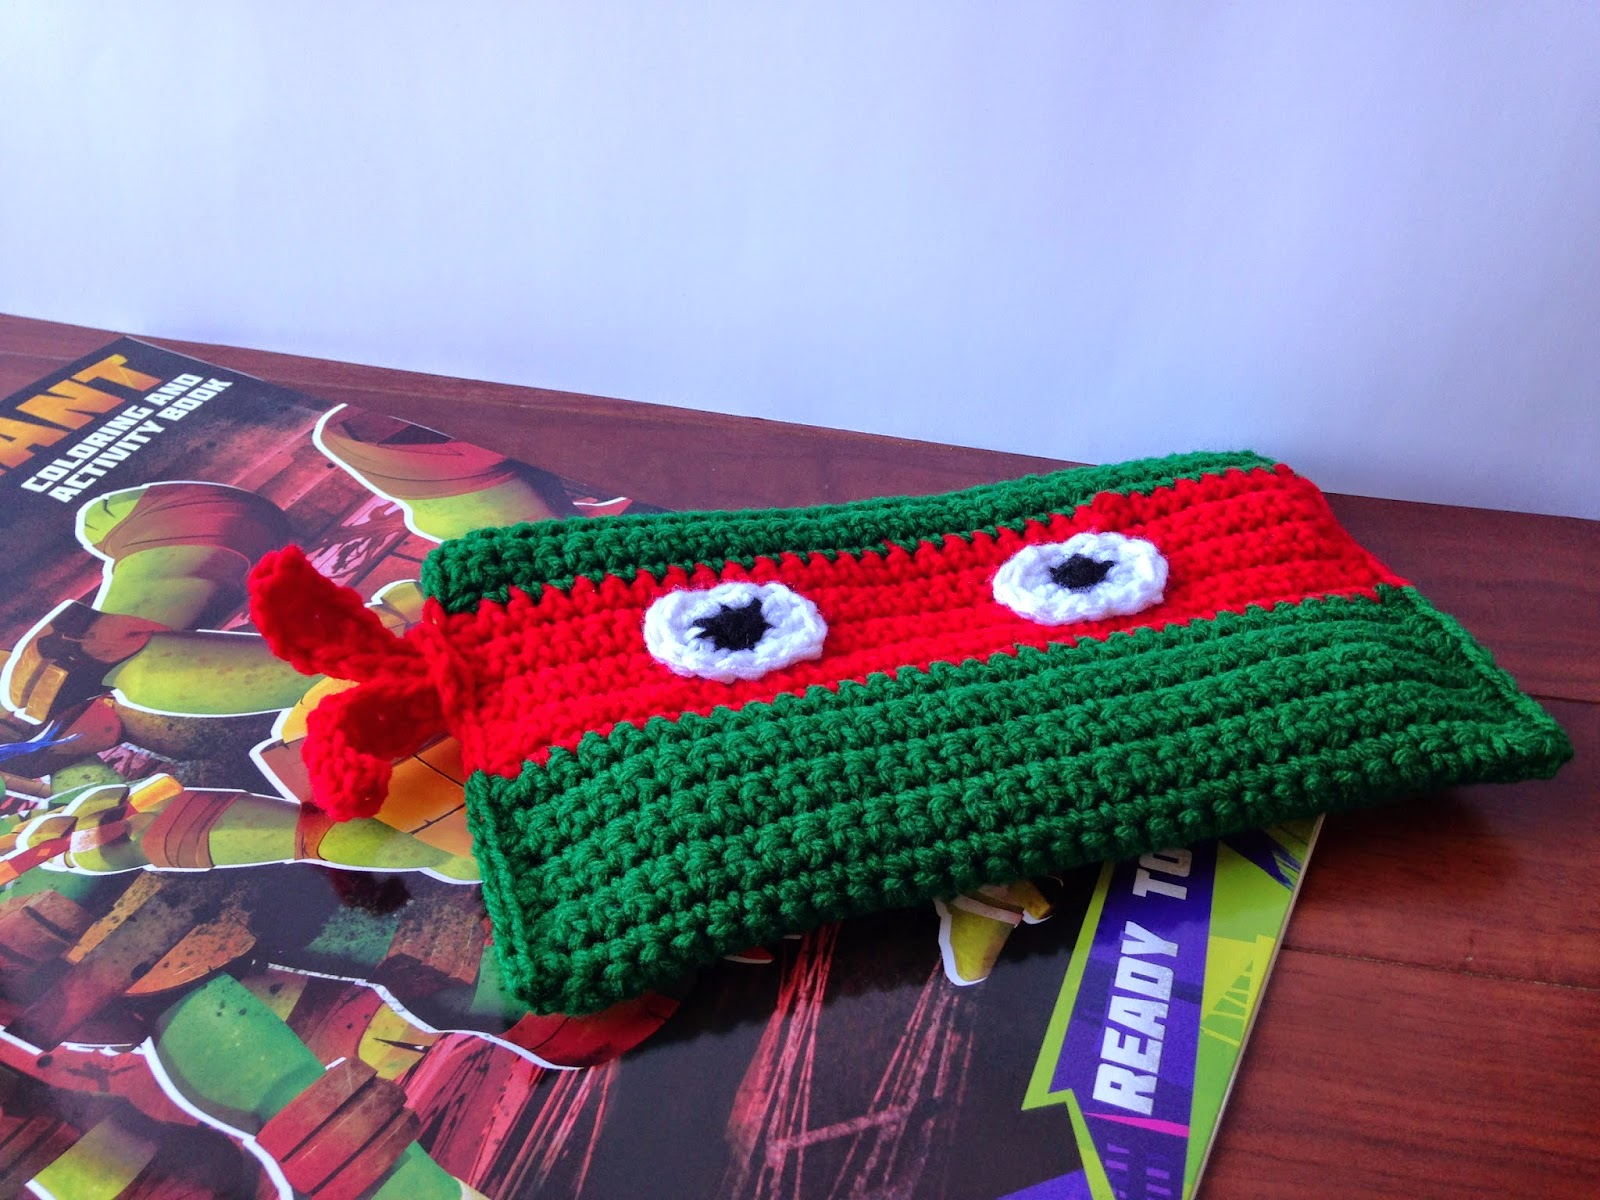 Crochet Pattern For Ninja Turtle Blanket : 5 Little Monsters: Free Pattern- Crocheted Ninja Turtle ...